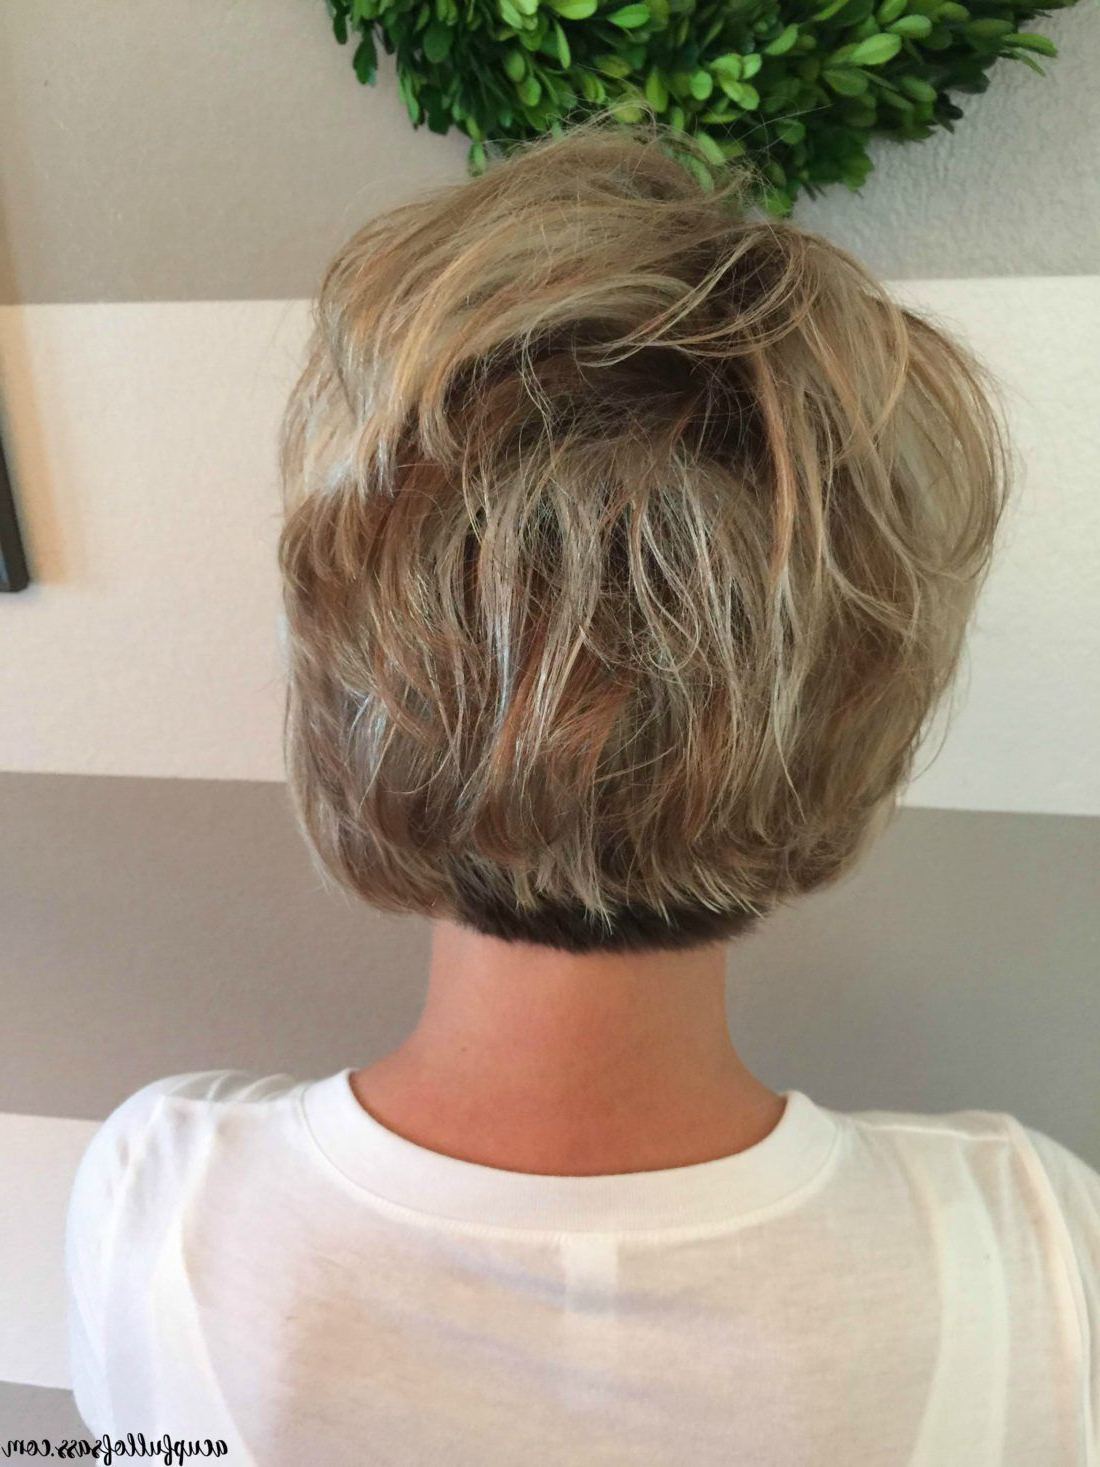 Easy Short Hairstyle With Fall Colors | Bobs | Short Hair With Short Shag Haircuts With Sass (View 7 of 20)